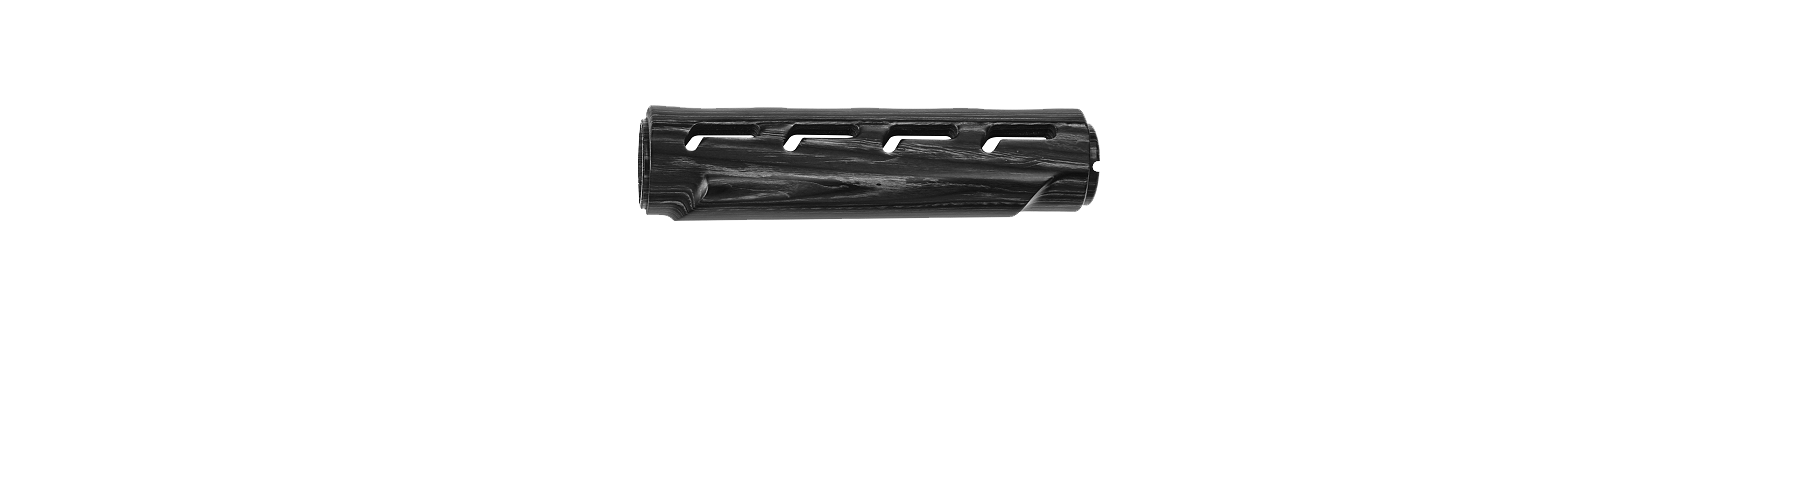 Smith & Wesson® Ar-15 Mid Length Hg Set